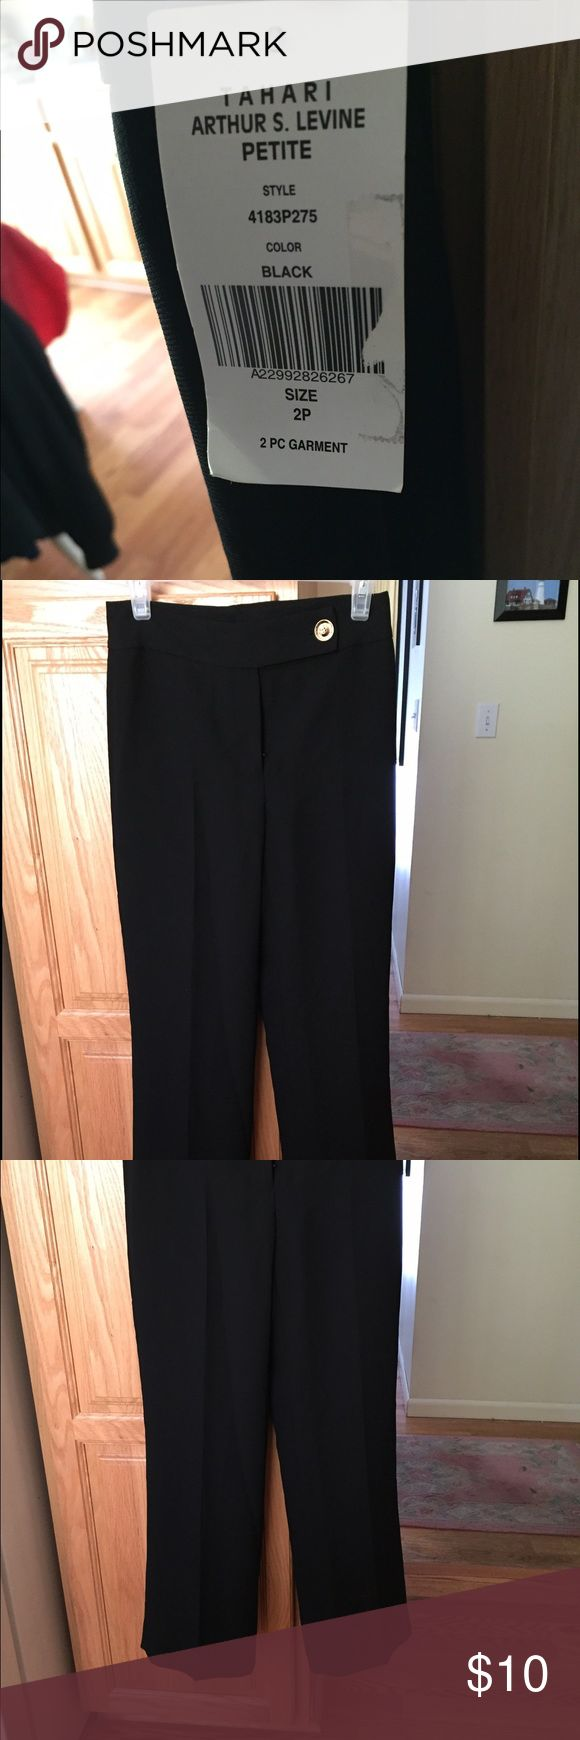 NWT Tahari ASL Petite pants Black Tahari black work pants. Size 2P. The pants were part of a two piece set, but you only receive the pants. The entire outfit was originally $129. Thanks for checking out my closet! Tahari Pants